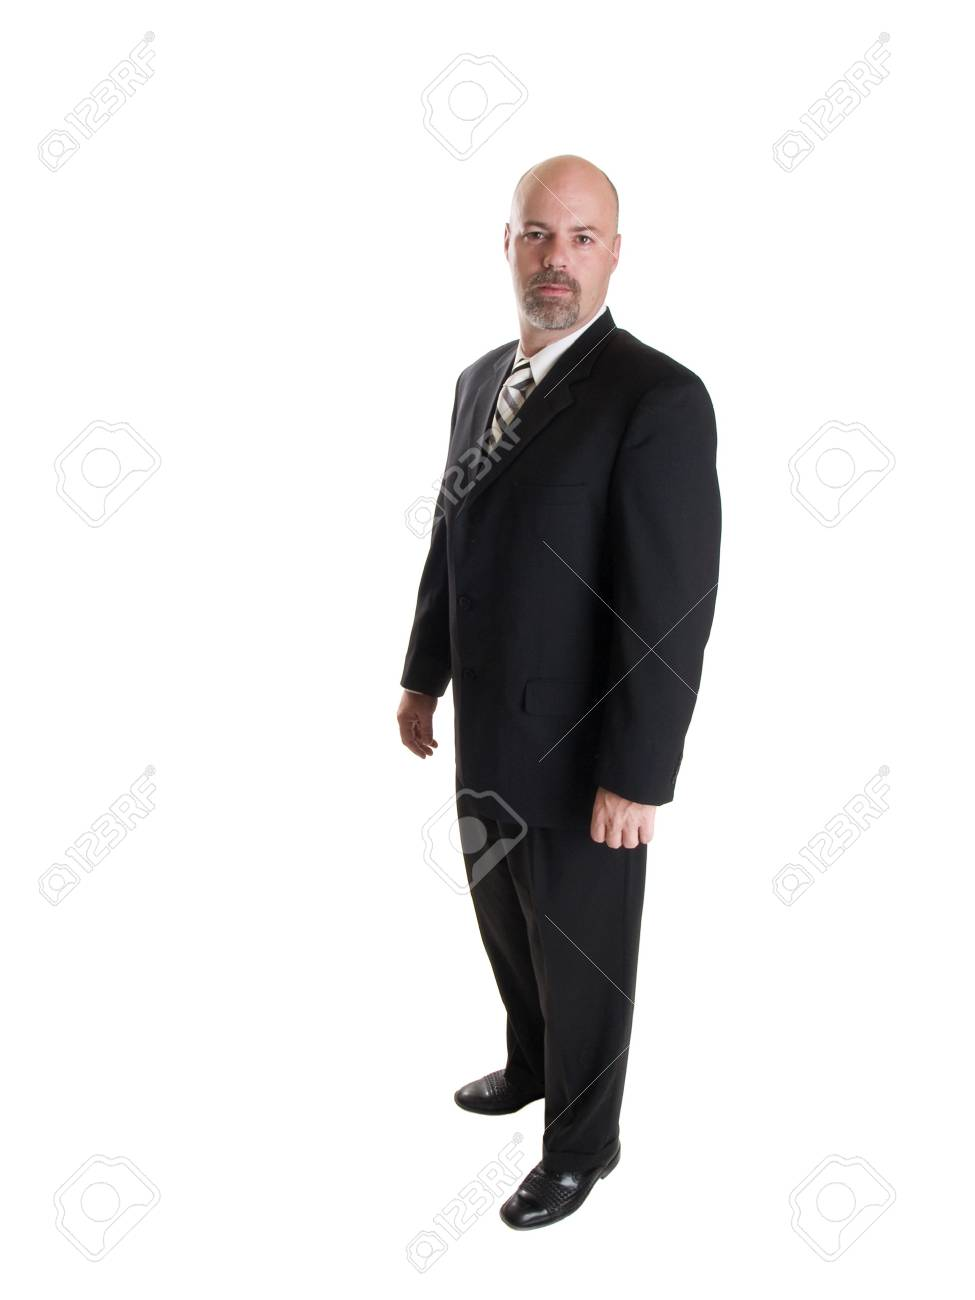 Stock photo of a well dressed confident businessman looking directly at the camera, isolated on white. Stock Photo - 8080460